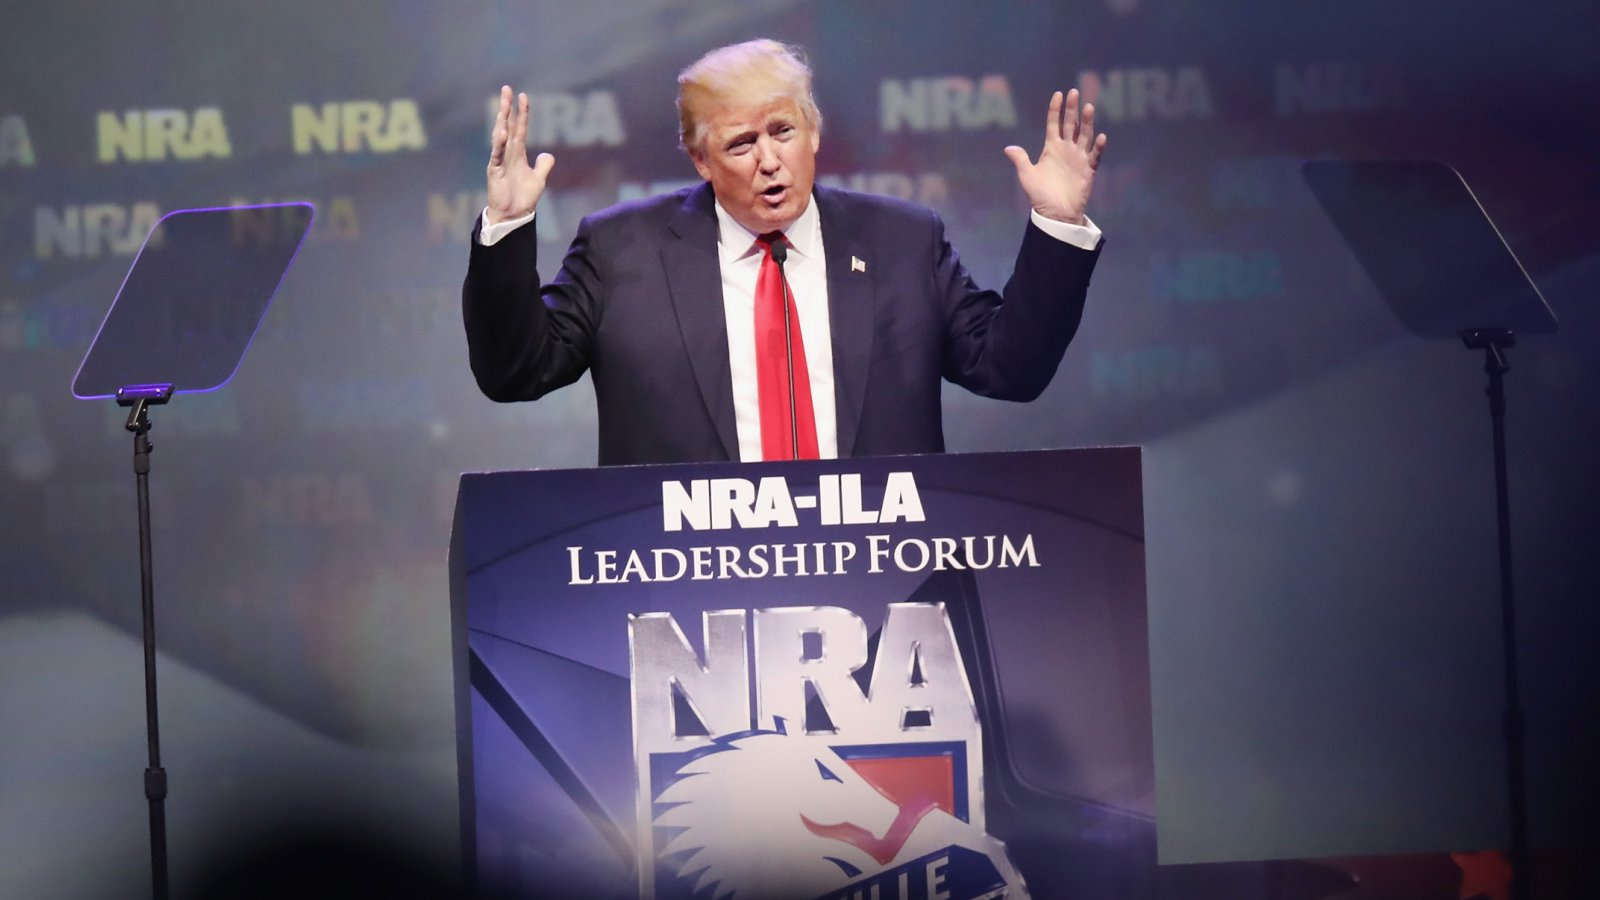 Image result for Images of Trump and NRA and Russian banker